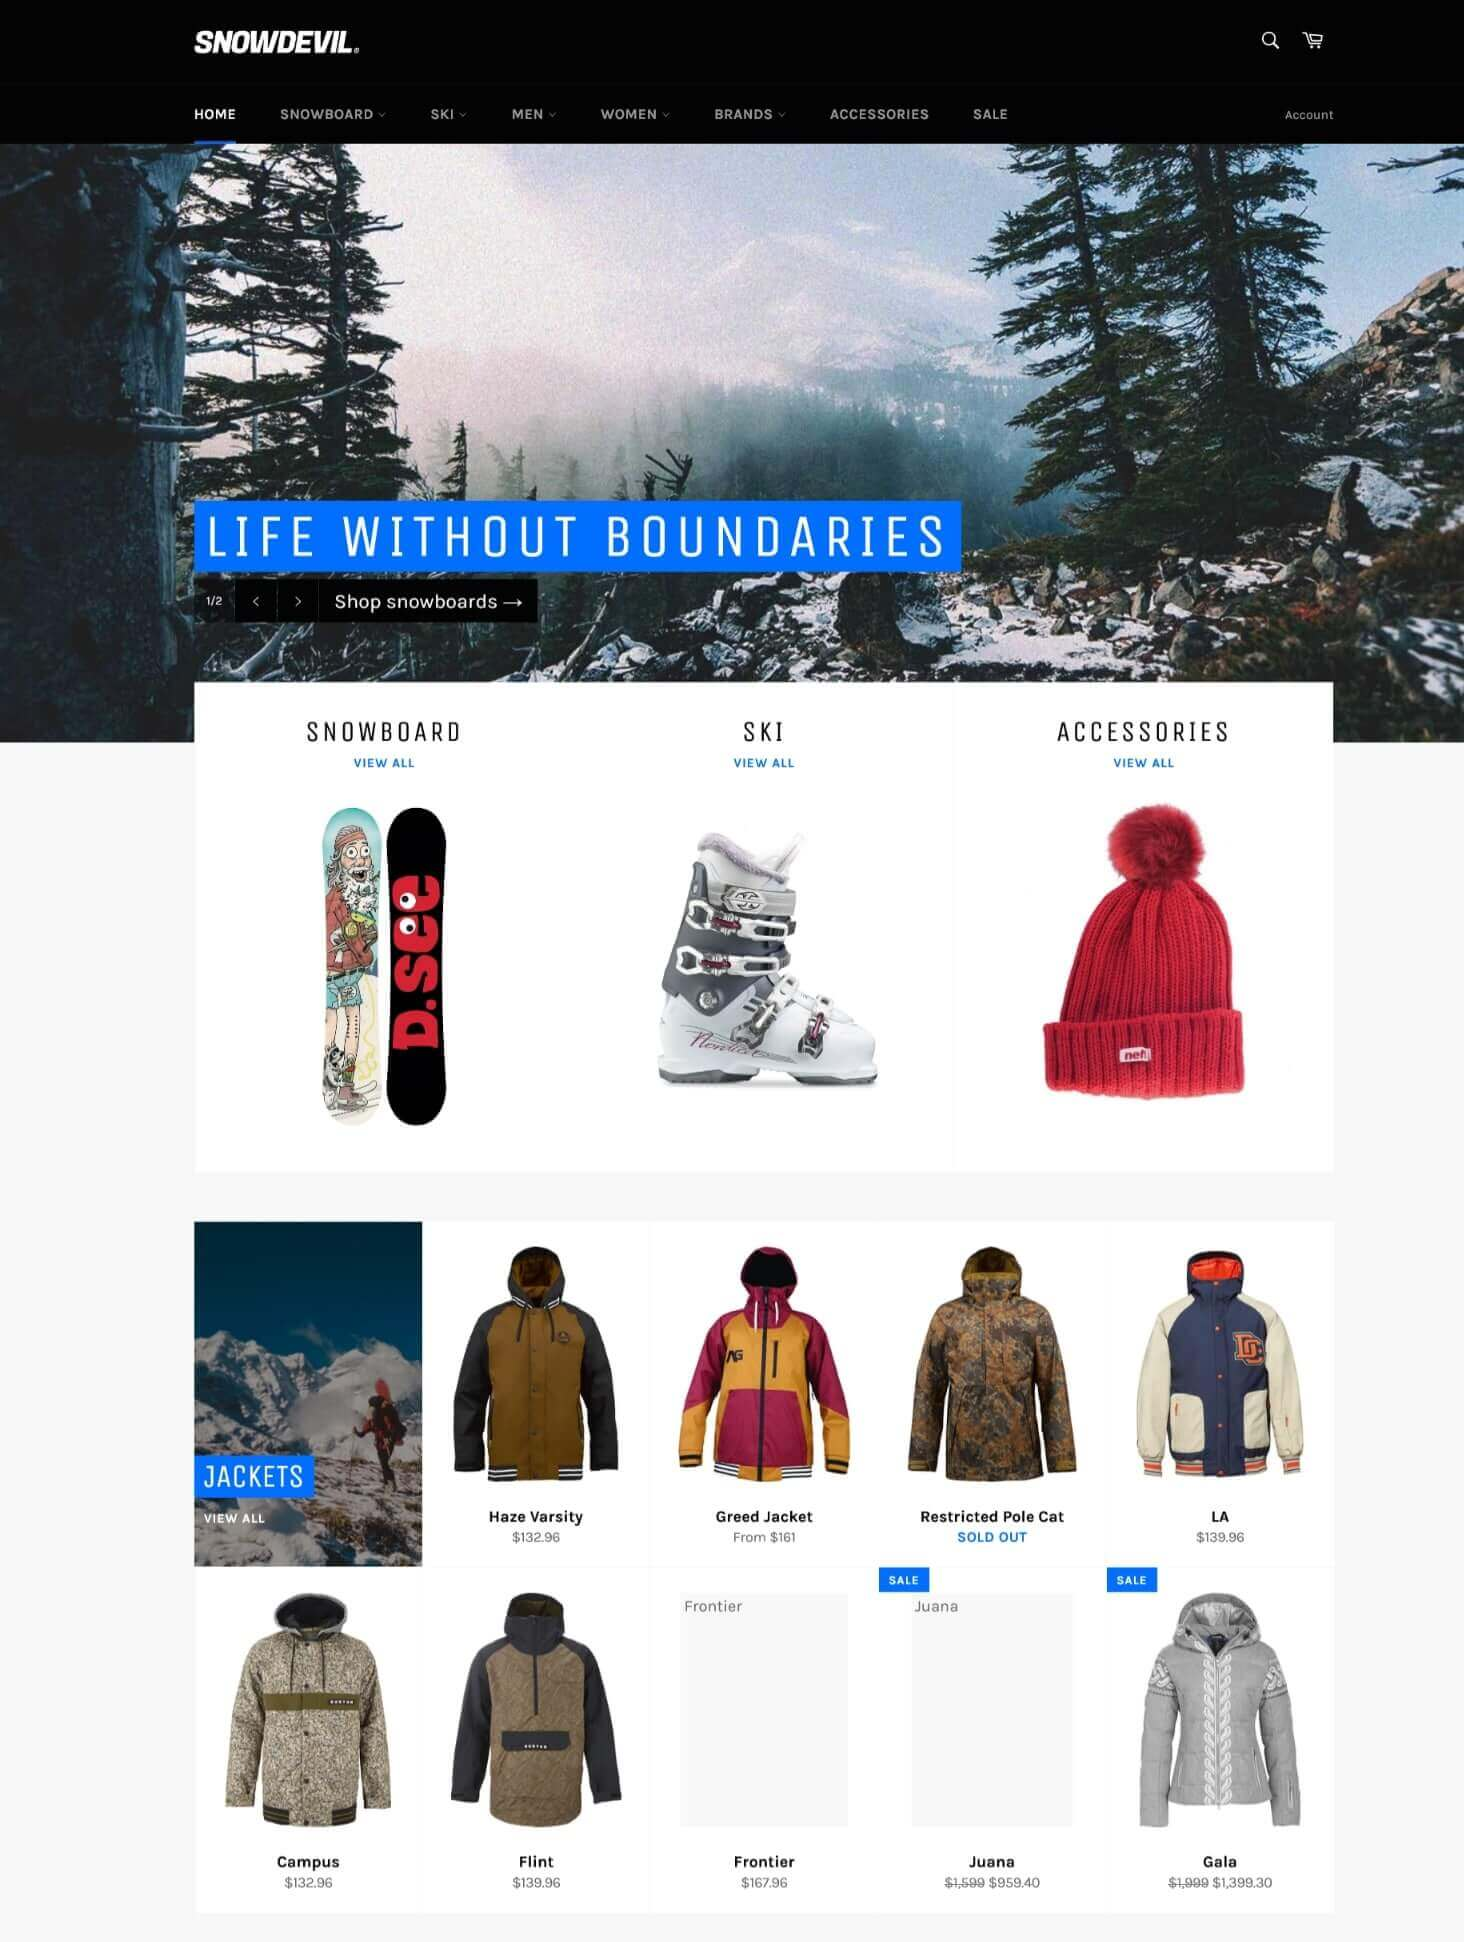 venture is what shopify theme is that